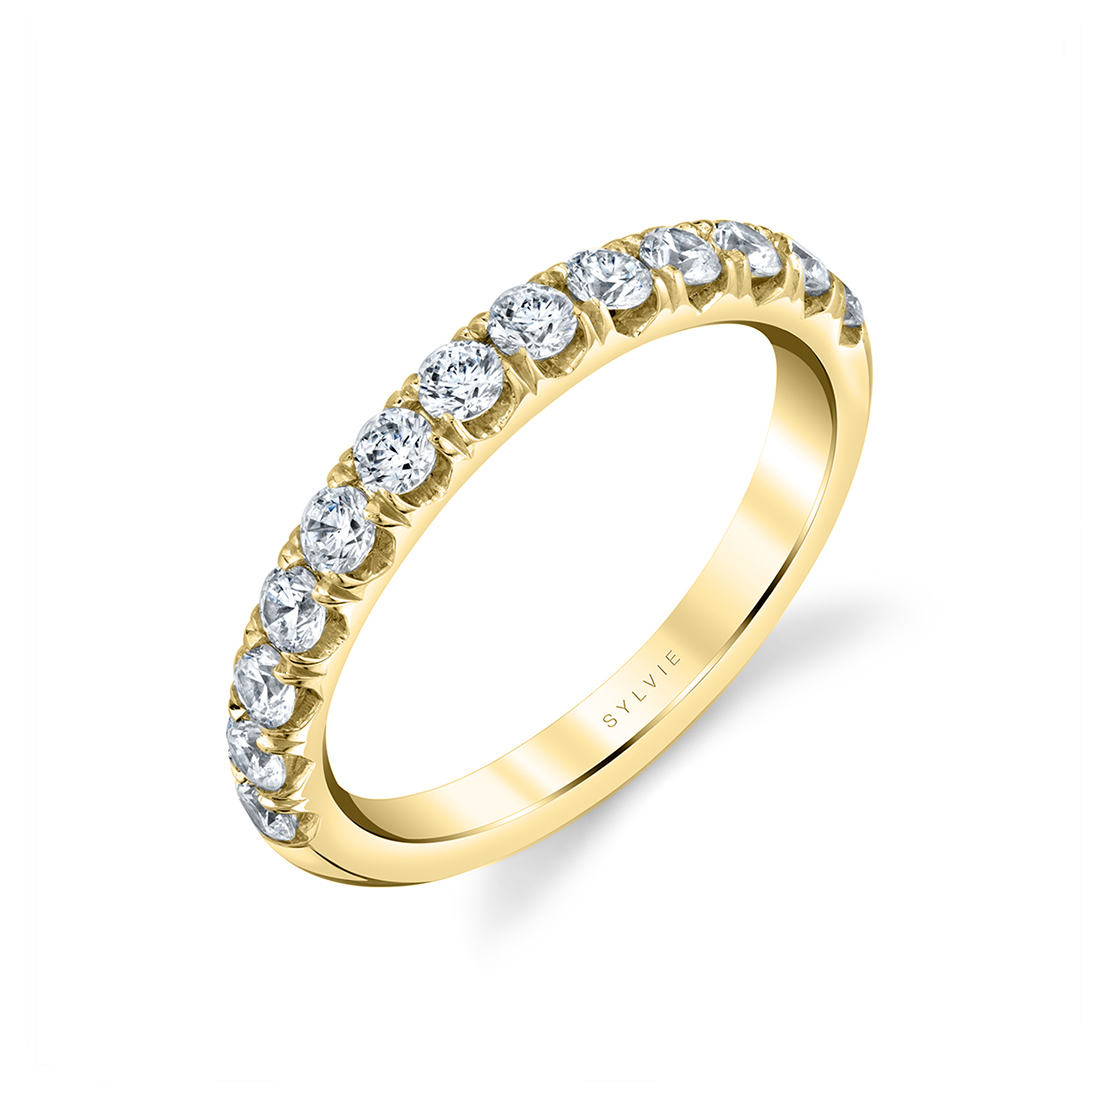 This is a graphic of Wide Wedding Band Adoria Matching Band Sylvie Collection